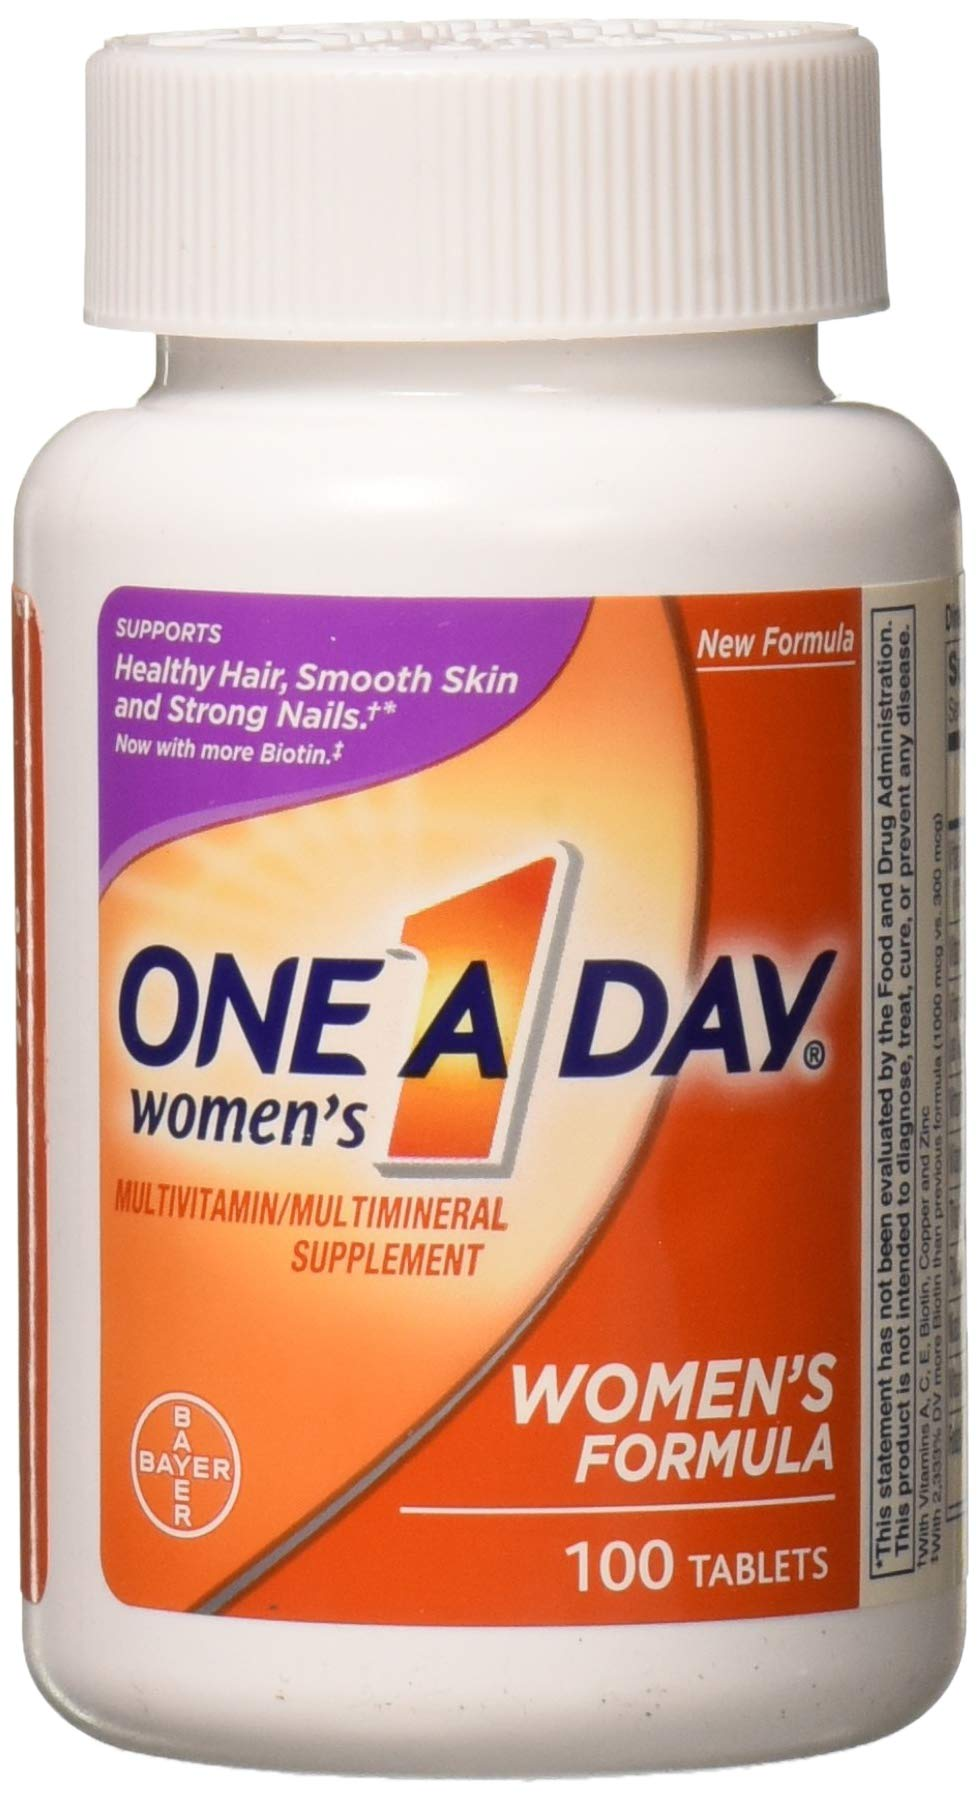 One-A-Day Women's Formula Vitamins, Tablets, 100 ct